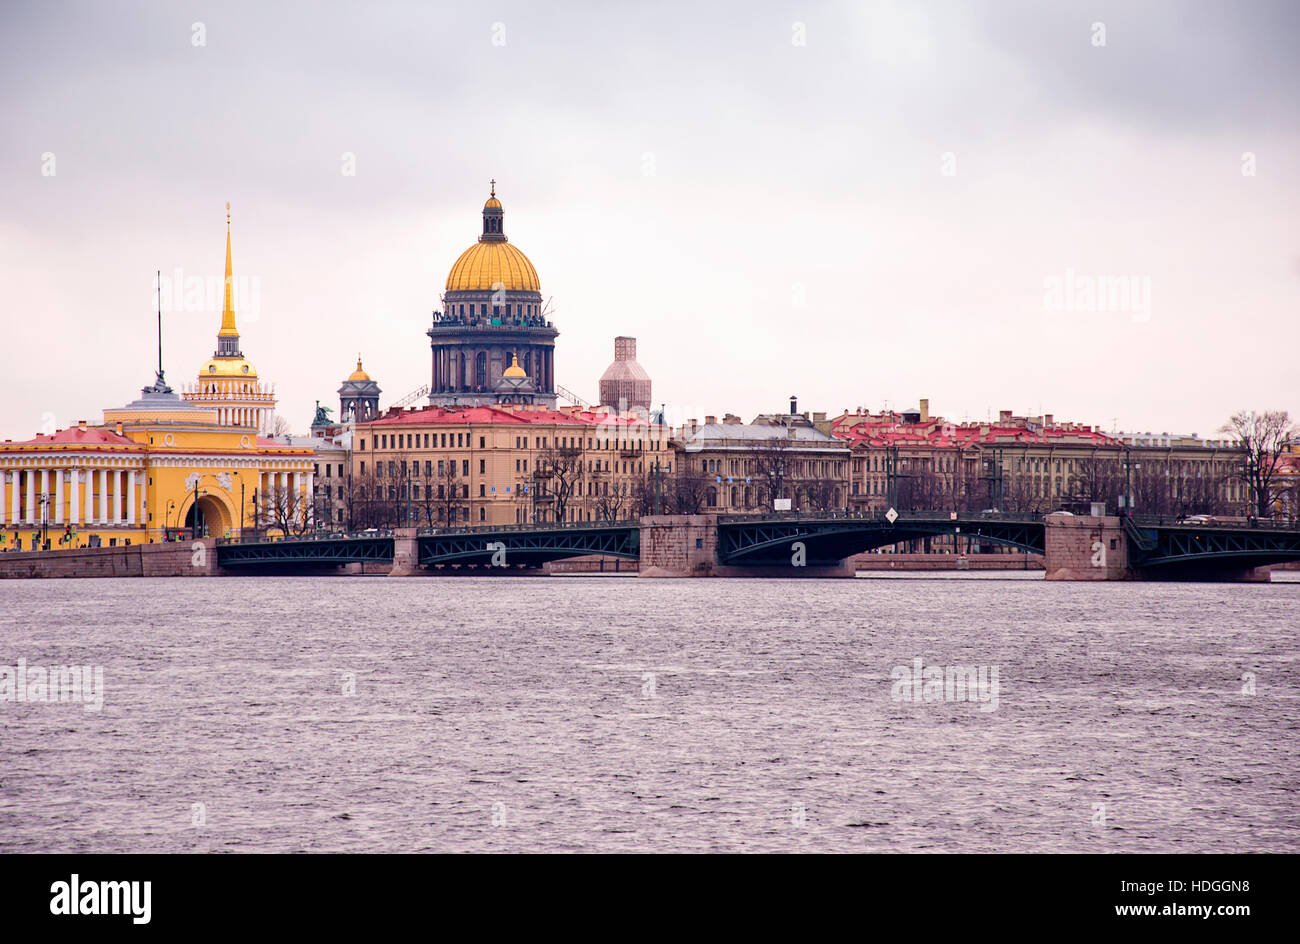 View by the Saint Isaac's Cathedral from Neva river, St. Petersburg, Russia Stock Photo